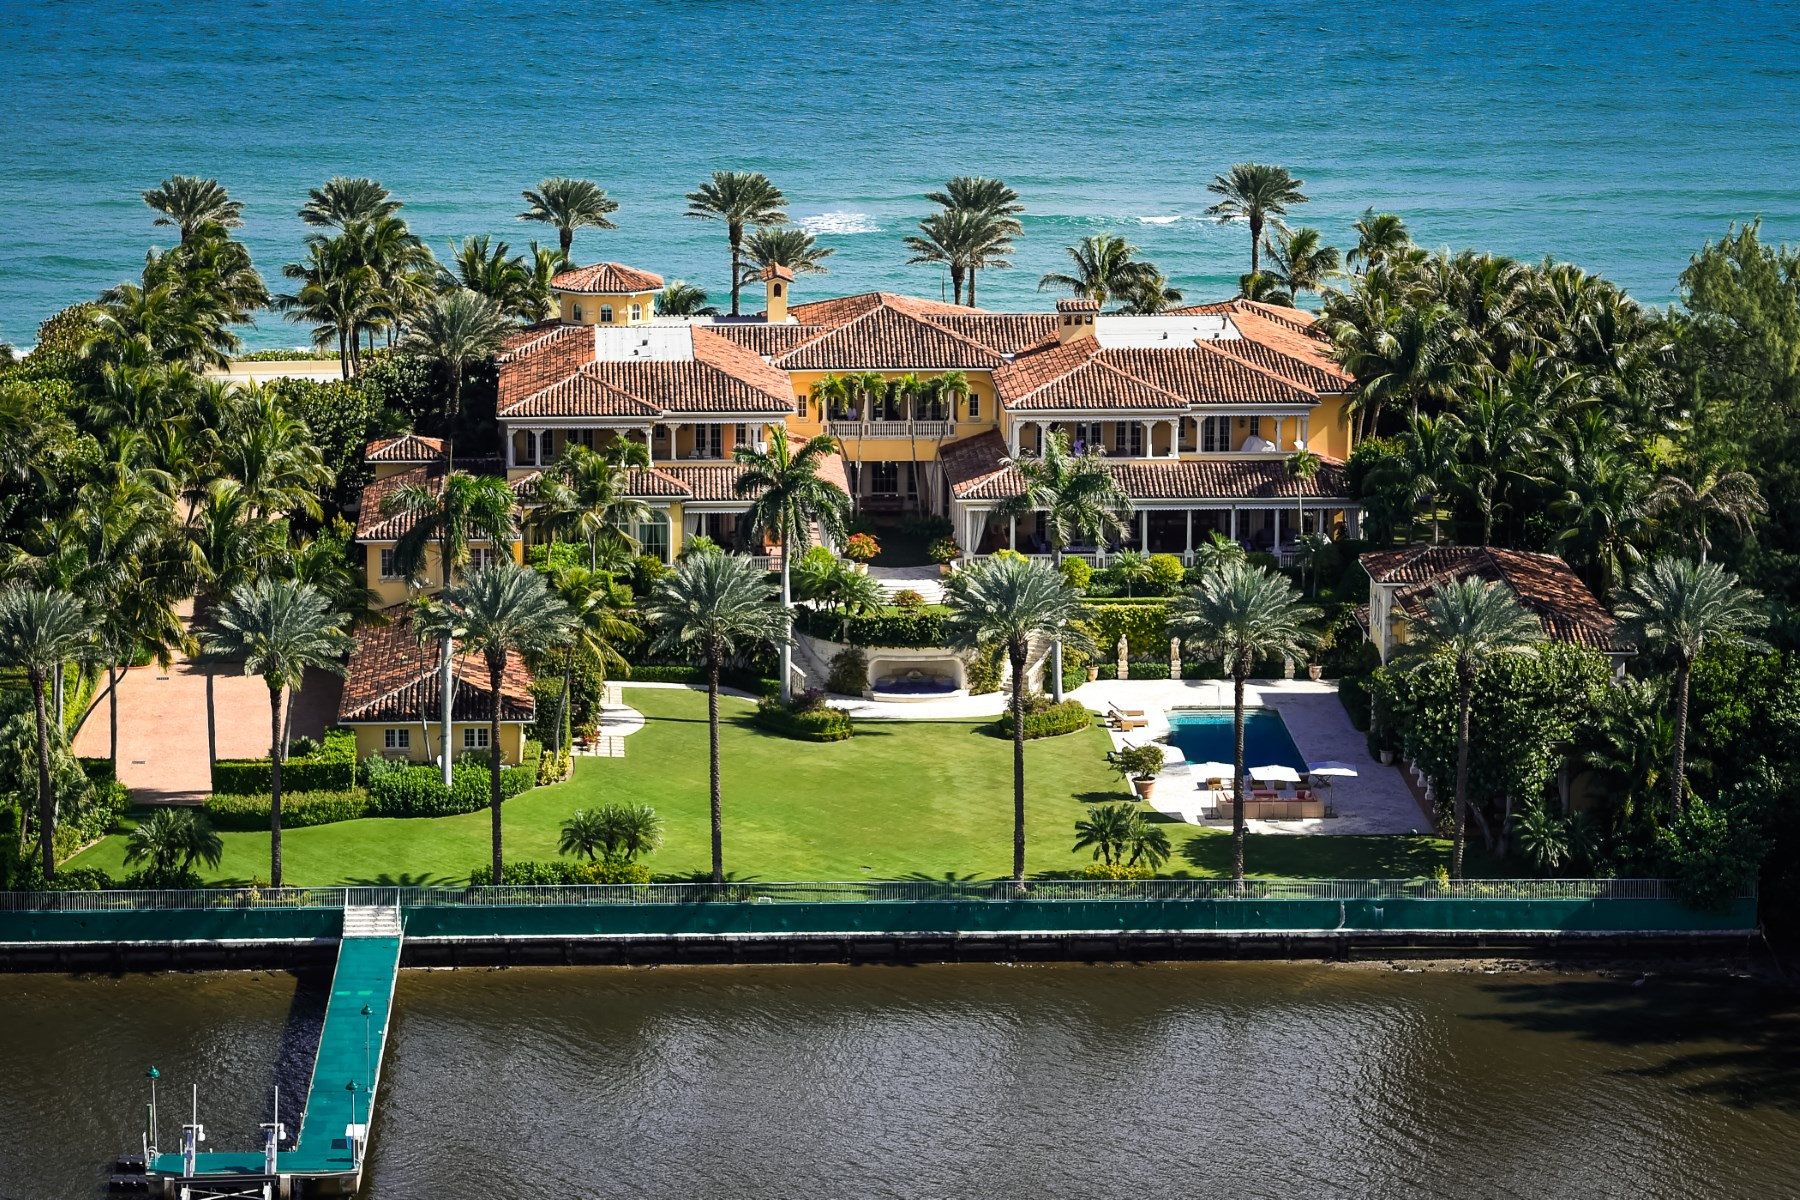 Single Family Home for Sale at Magnificent Mediterranean Estate Section, Palm Beach, Florida 33480 United States